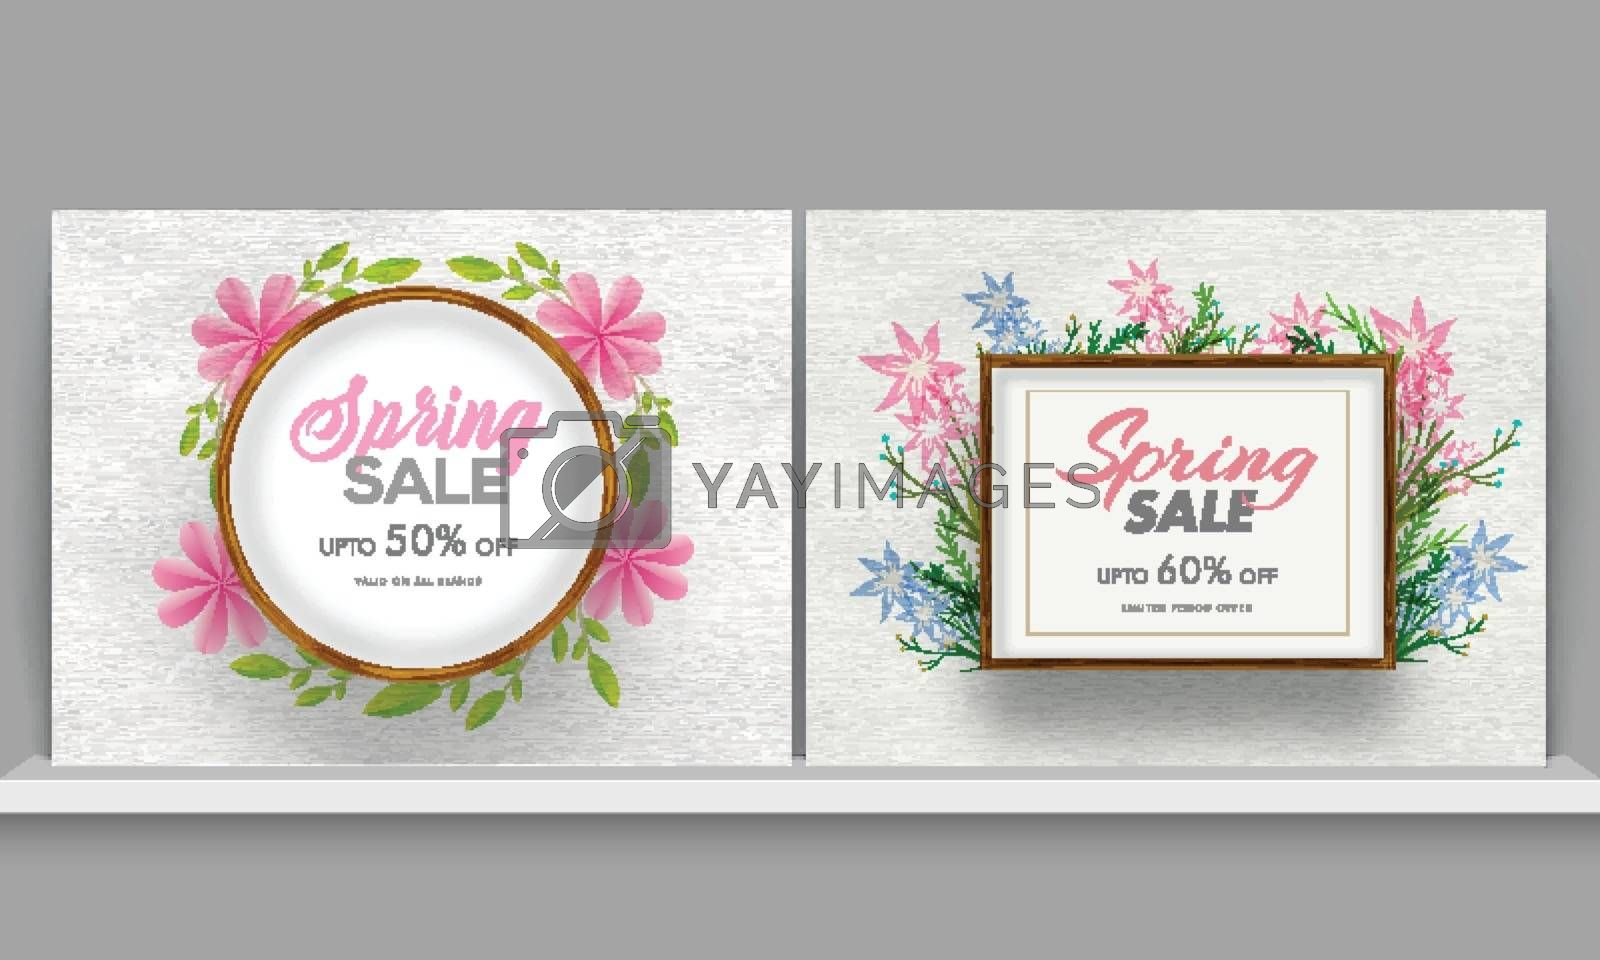 Royalty free image of Spring sale poster or banner set with attractive discount offers by aispl